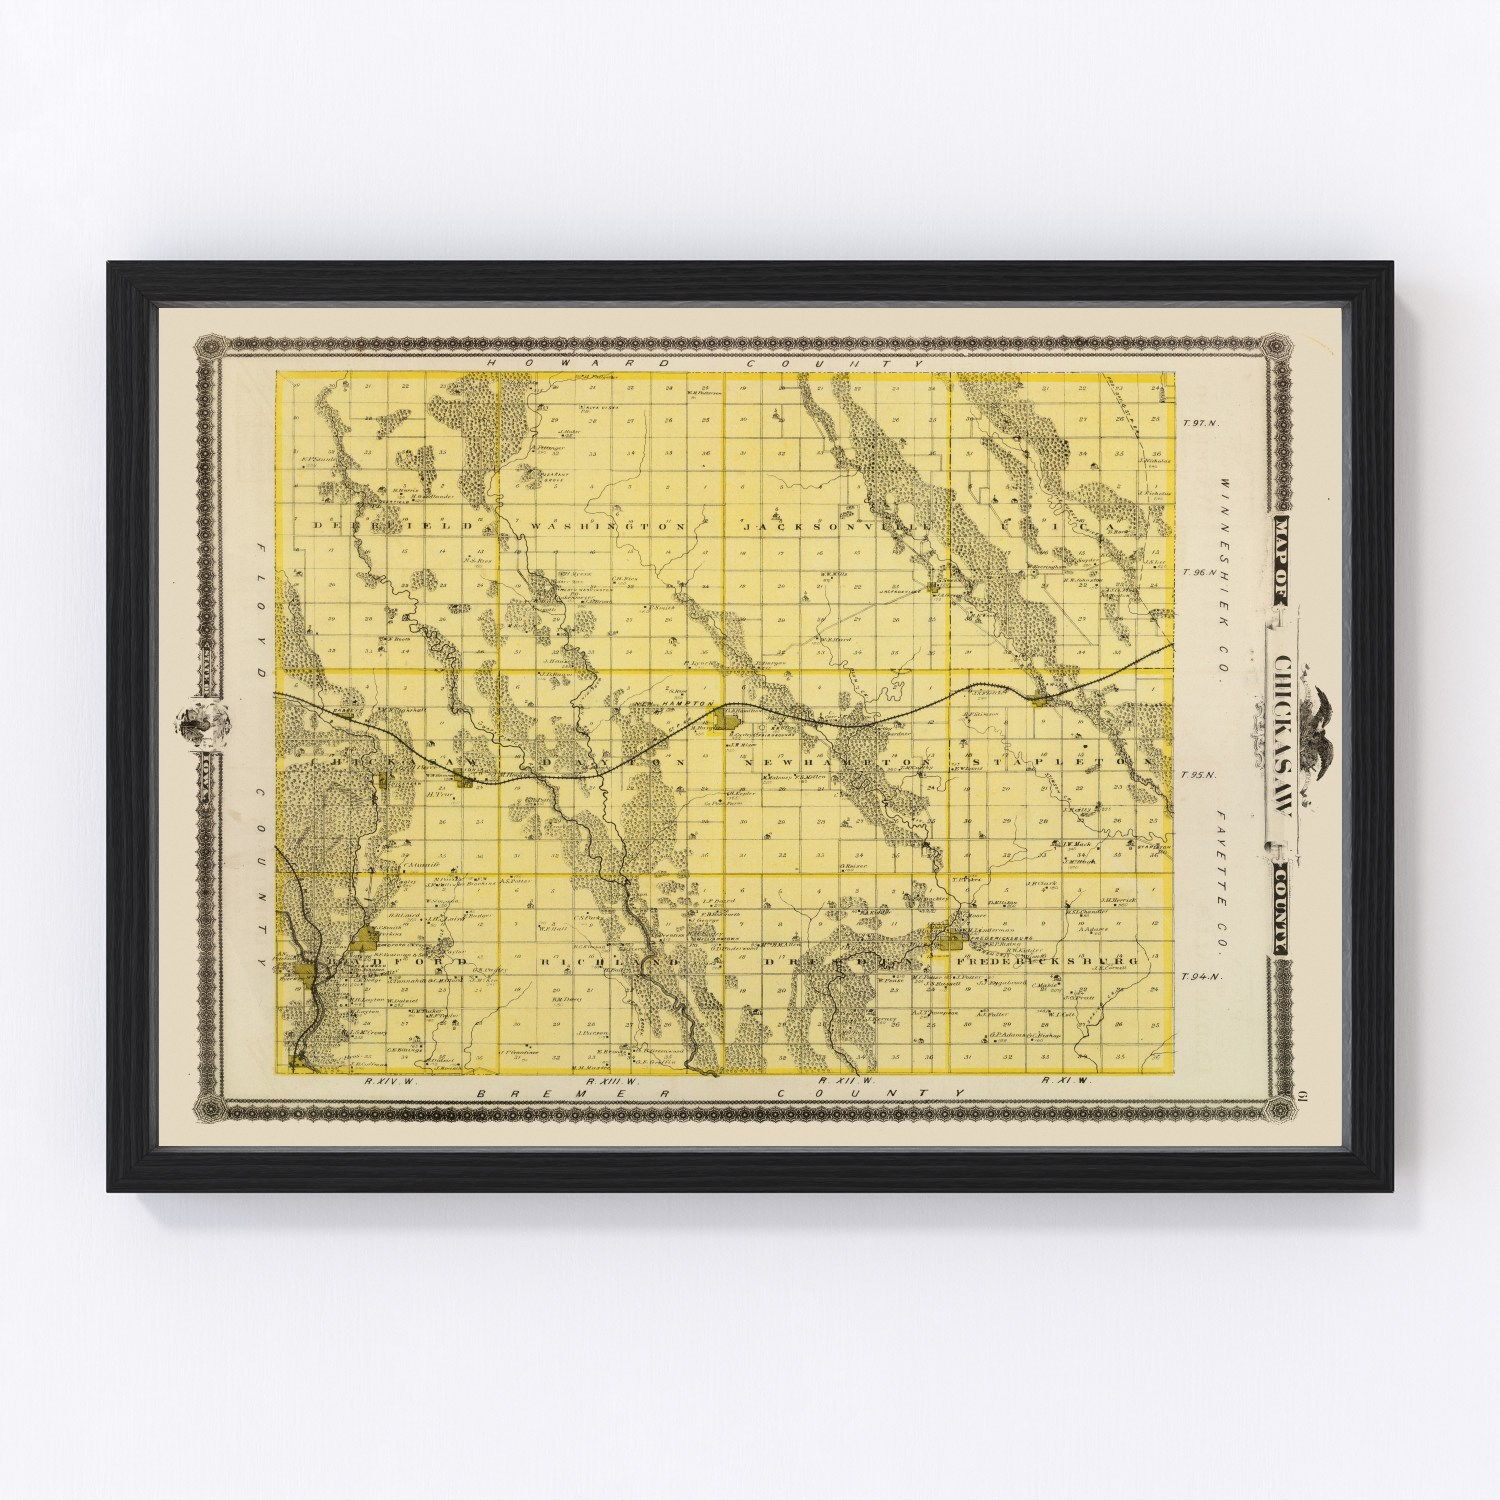 Vintage Map of Chickasaw County Iowa, 1875